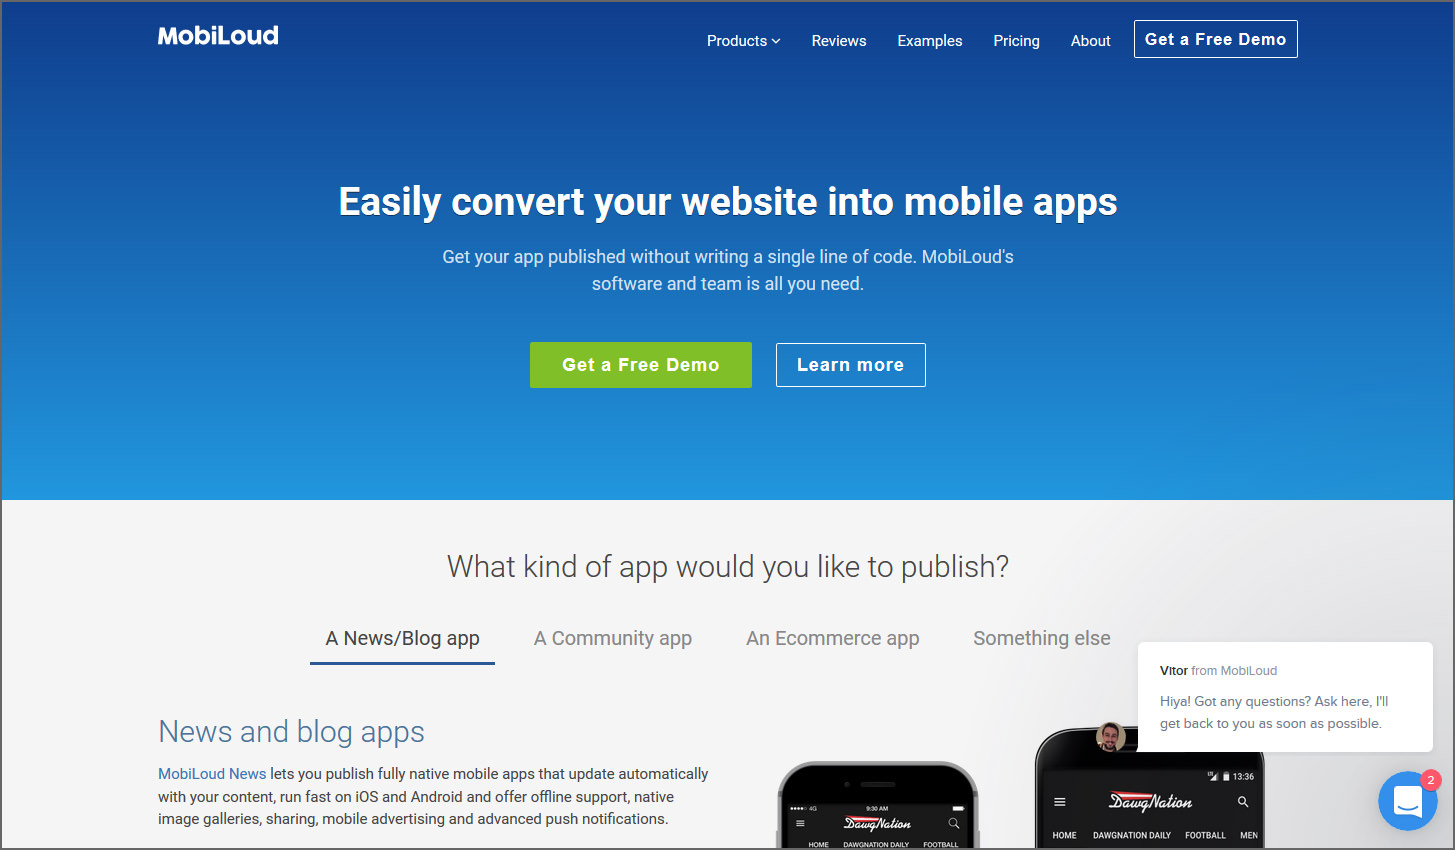 MobiLoud Canvas is our latest product designed to convert any mobile optimized WordPress site into mobile apps, including directory sites, conference and ...